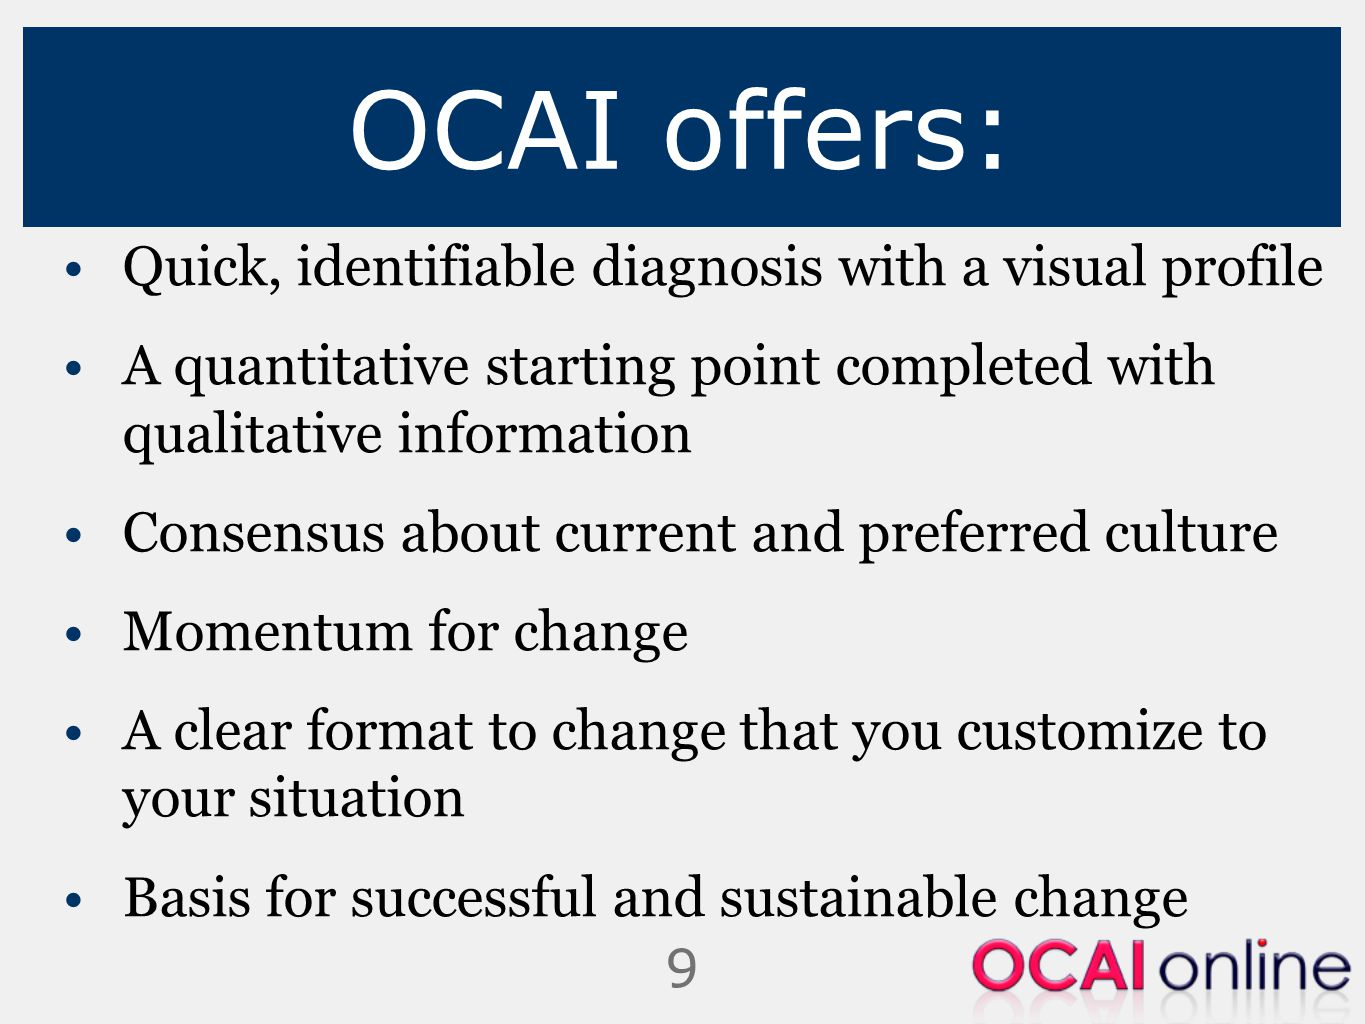 OCAI offers: Quick, identifiable diagnosis with a visual profile